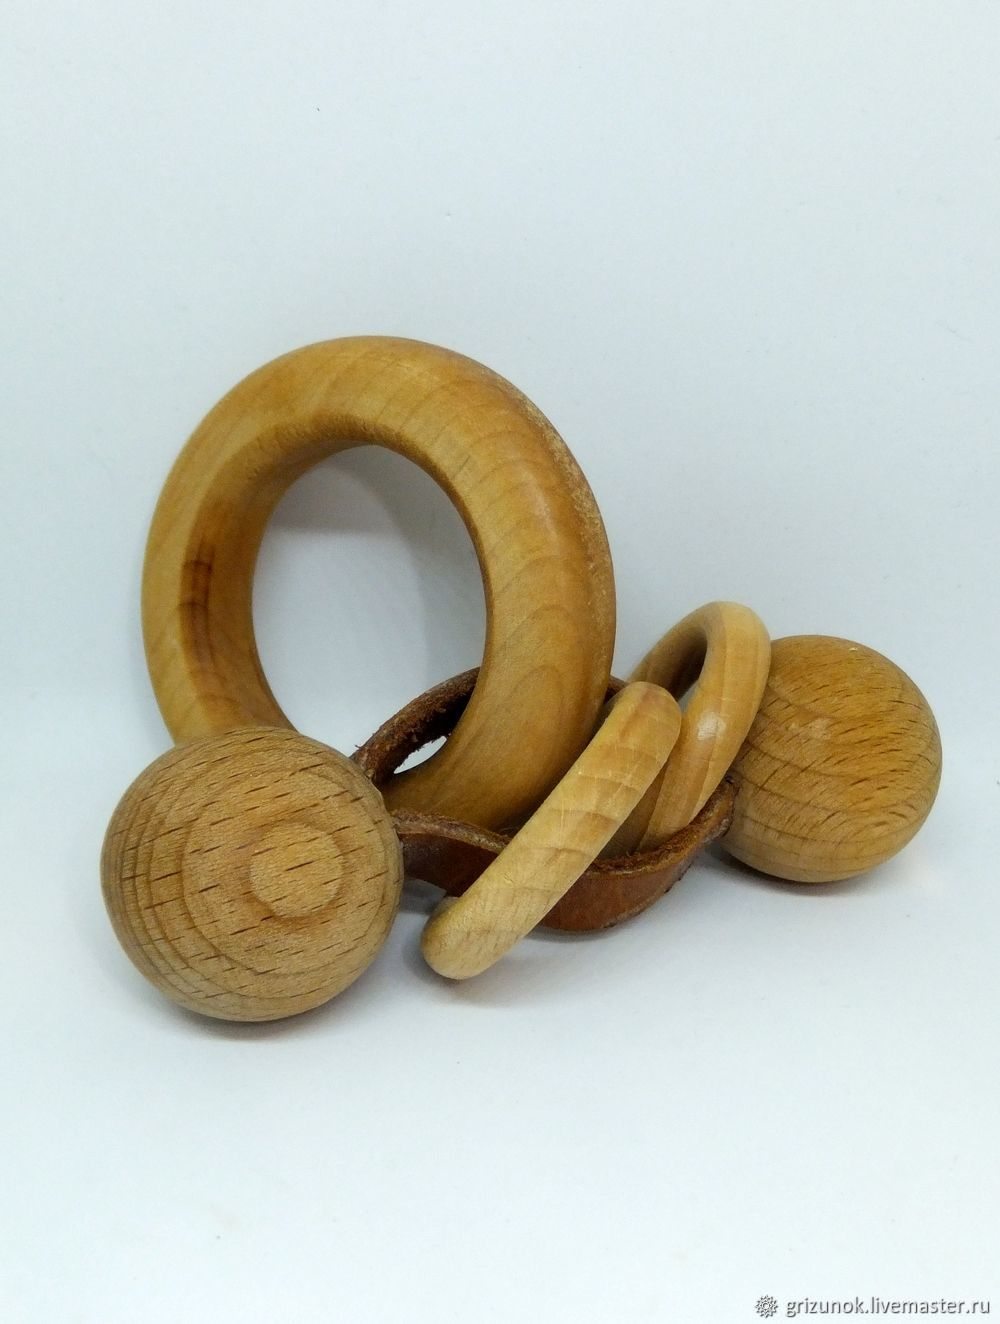 Wooden toy rattle Motor skills, Teethers rattles, Moscow,  Фото №1